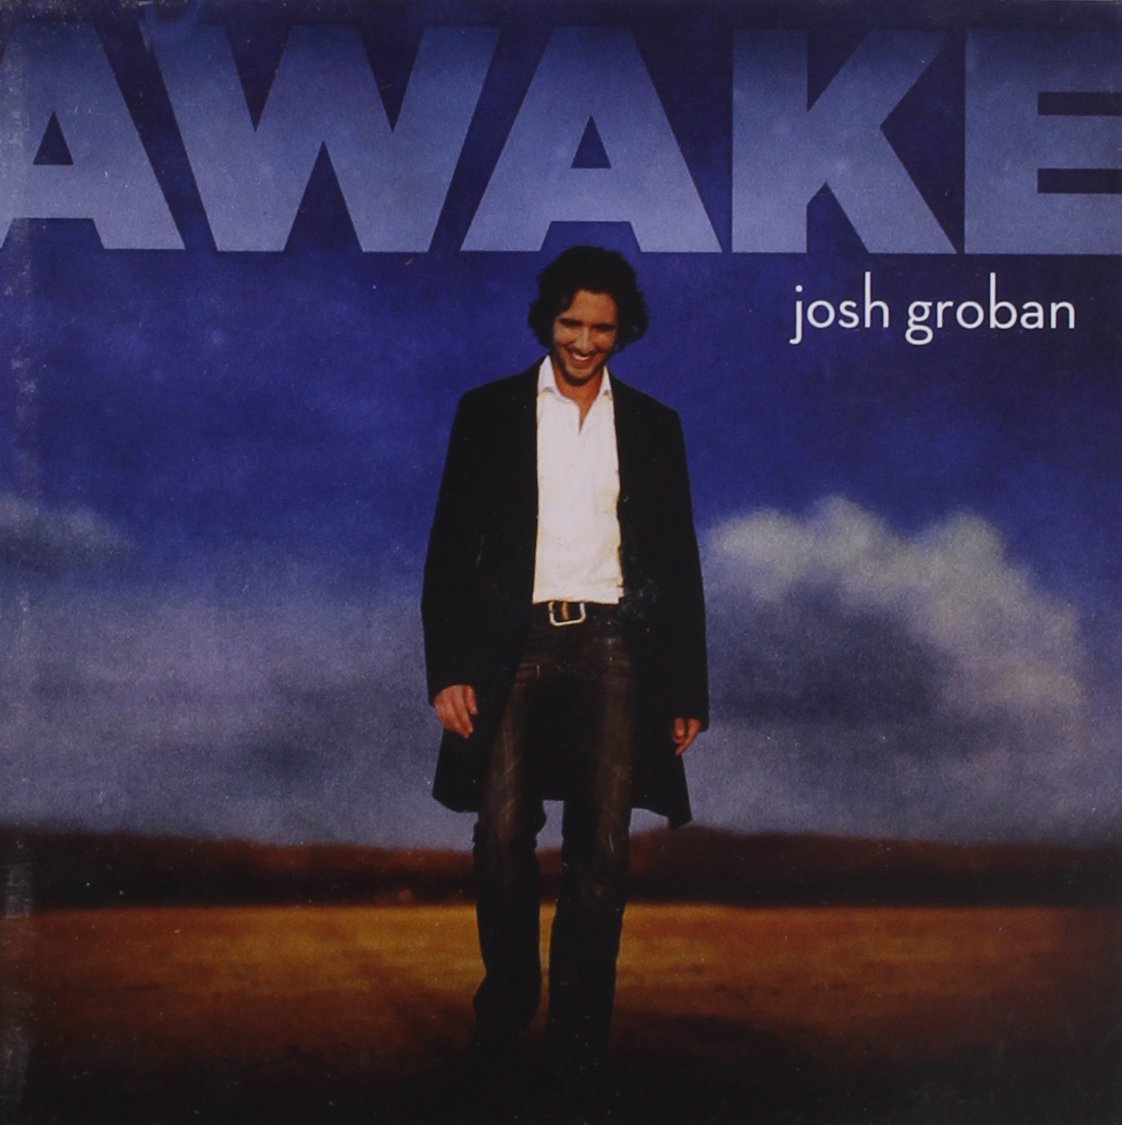 Josh Groban - Awake - Amazon.com Music